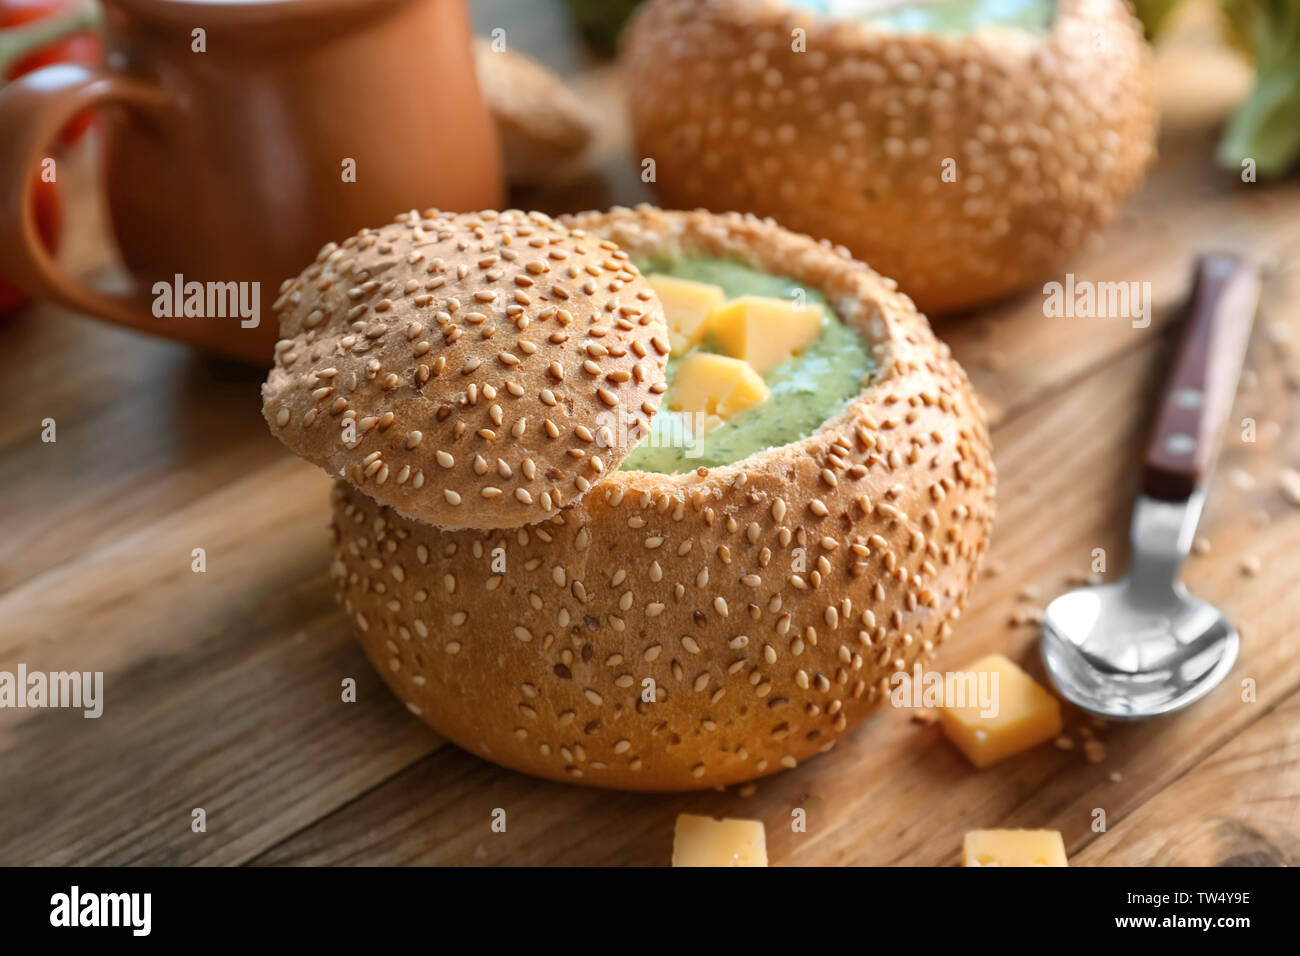 Broccoli cheese soup in bread bun on wooden table - Stock Image